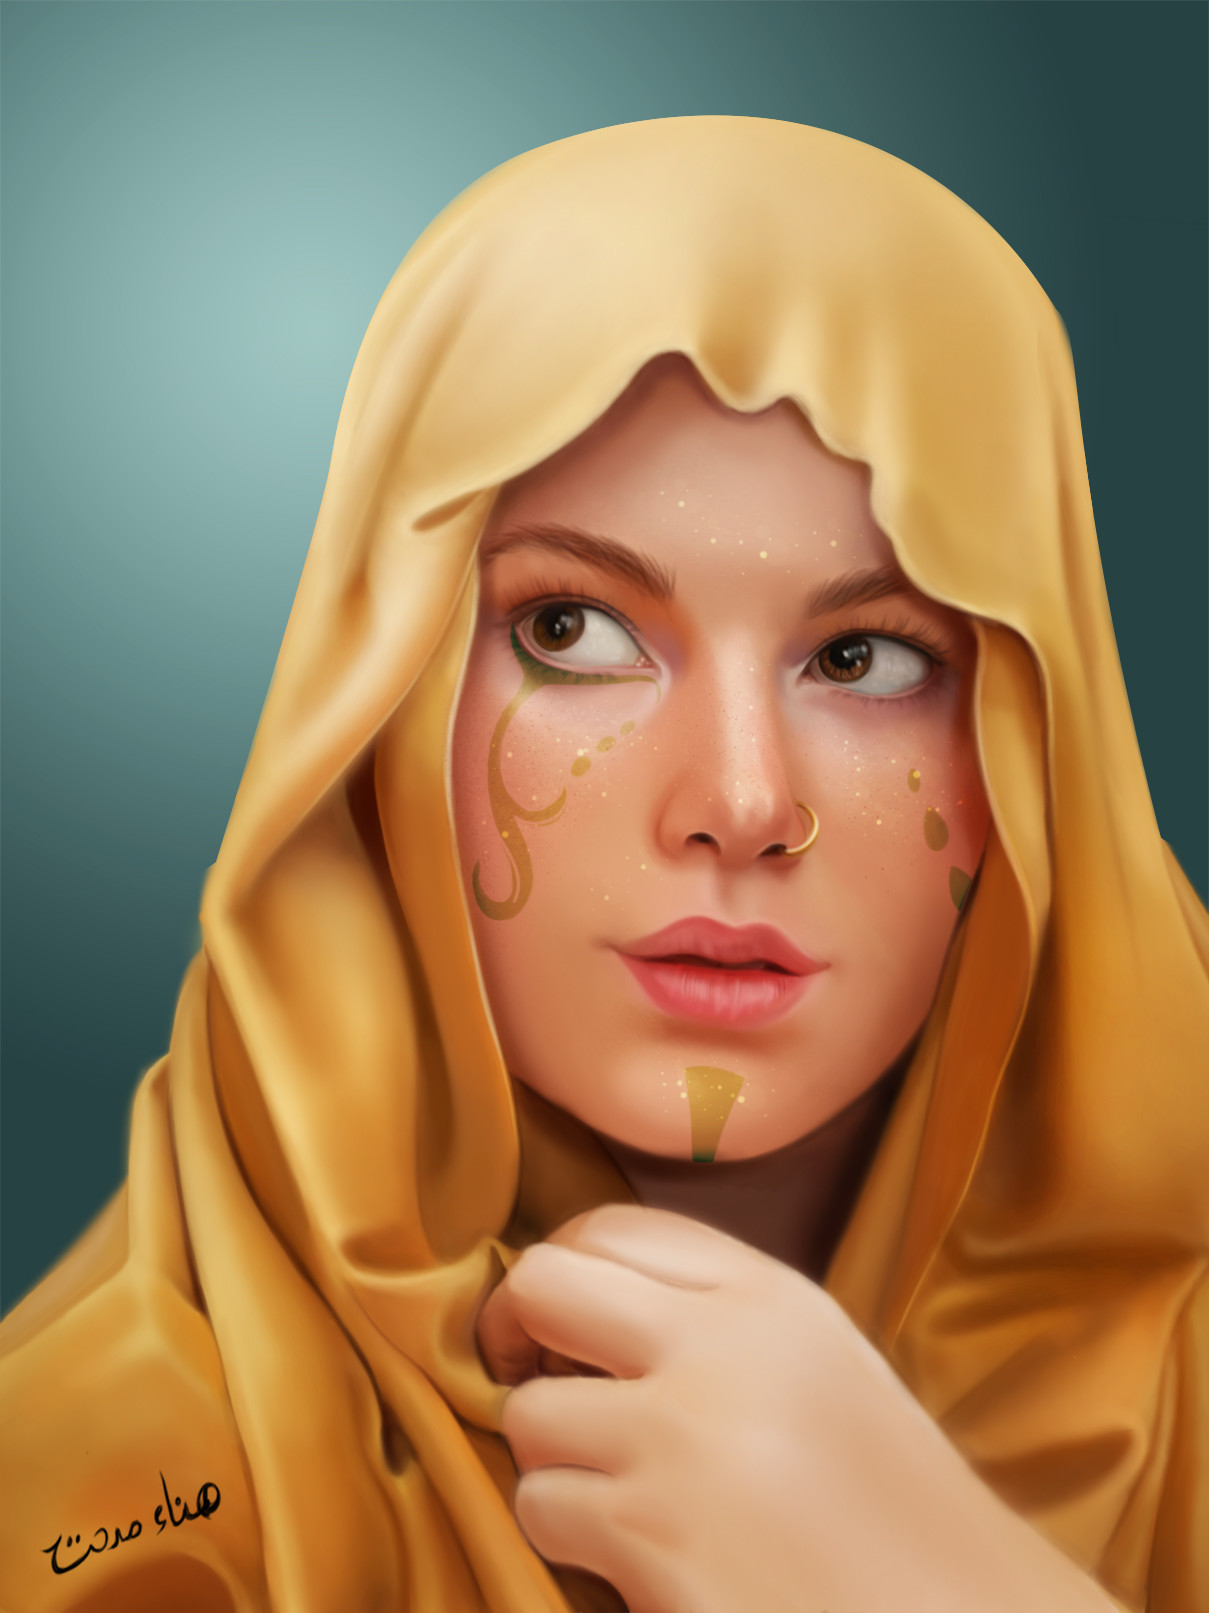 Hanaa medhat gold woman